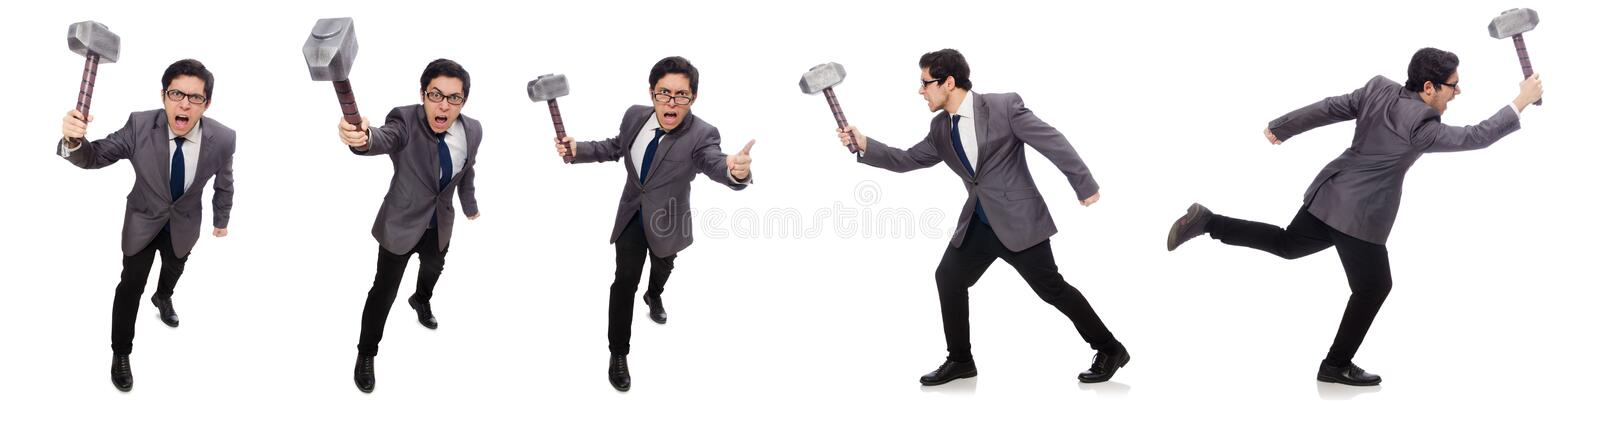 Business man holding hammer isolated on white. The business man holding hammer isolated on white stock photos